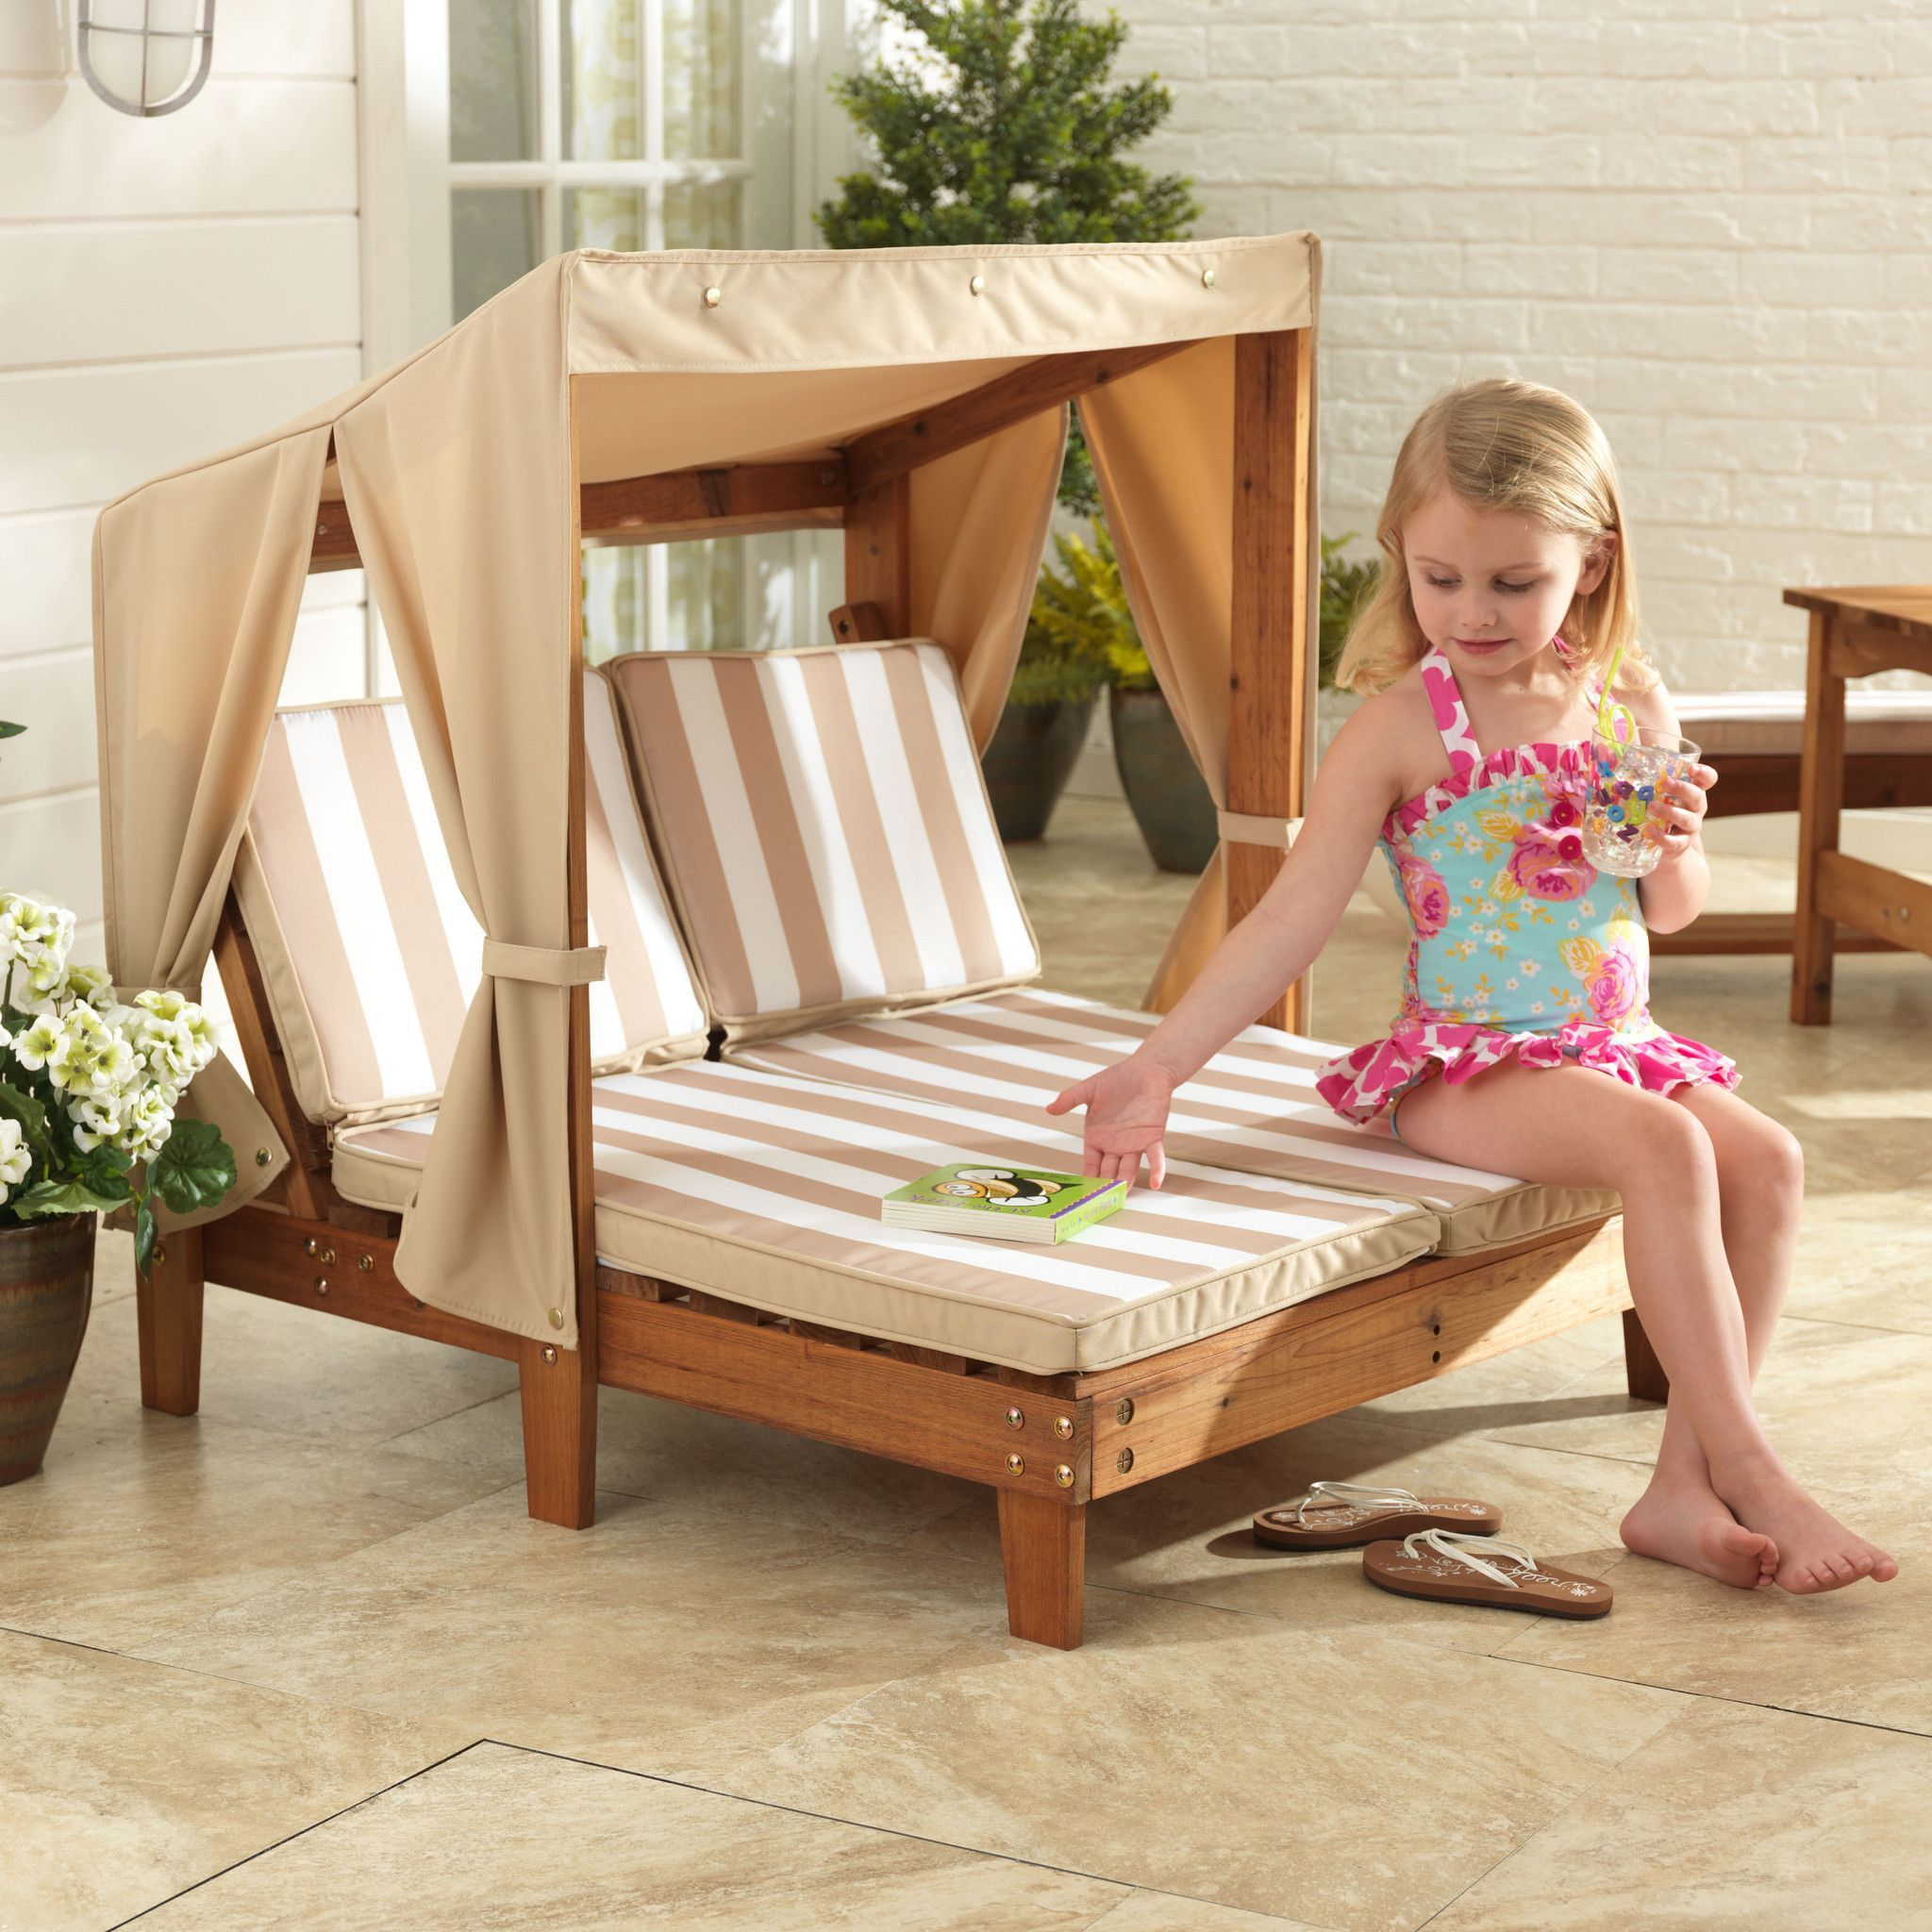 Kids Chaise Lounge Chair This Chaise Lounger Is Designed With Kid Friendly